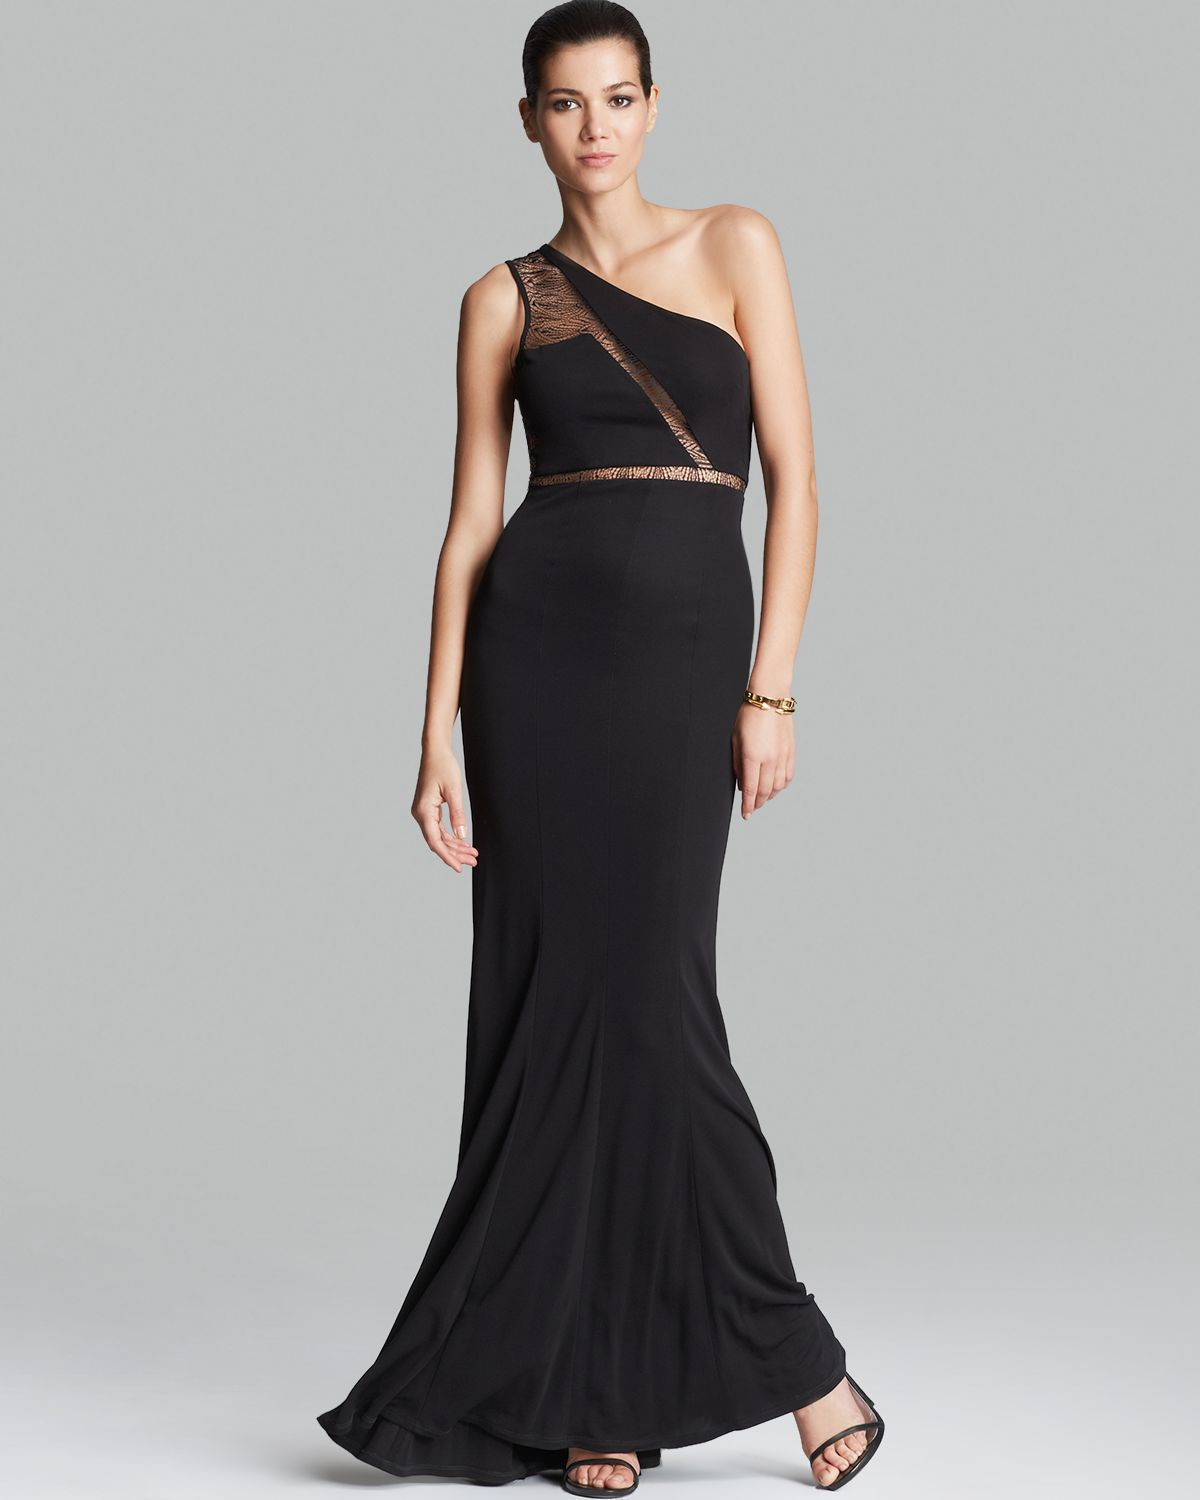 Lyst - Abs By Allen Schwartz Gown One Shoulder Mesh Lace Inset in Black